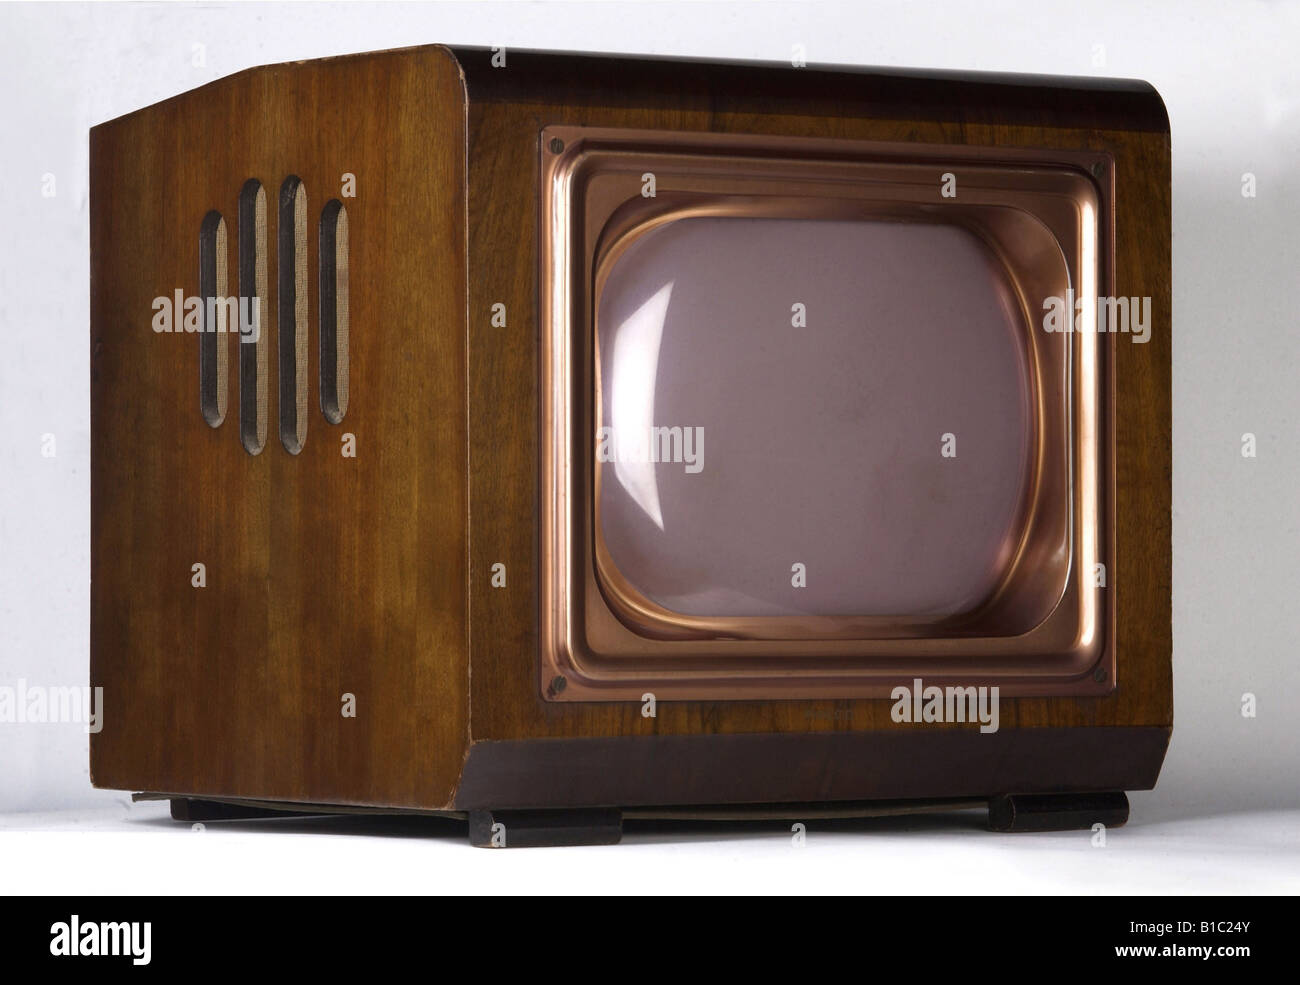 Broadcast Television Tv Set Models Stock Photos Broadcast  # Model Table Tele